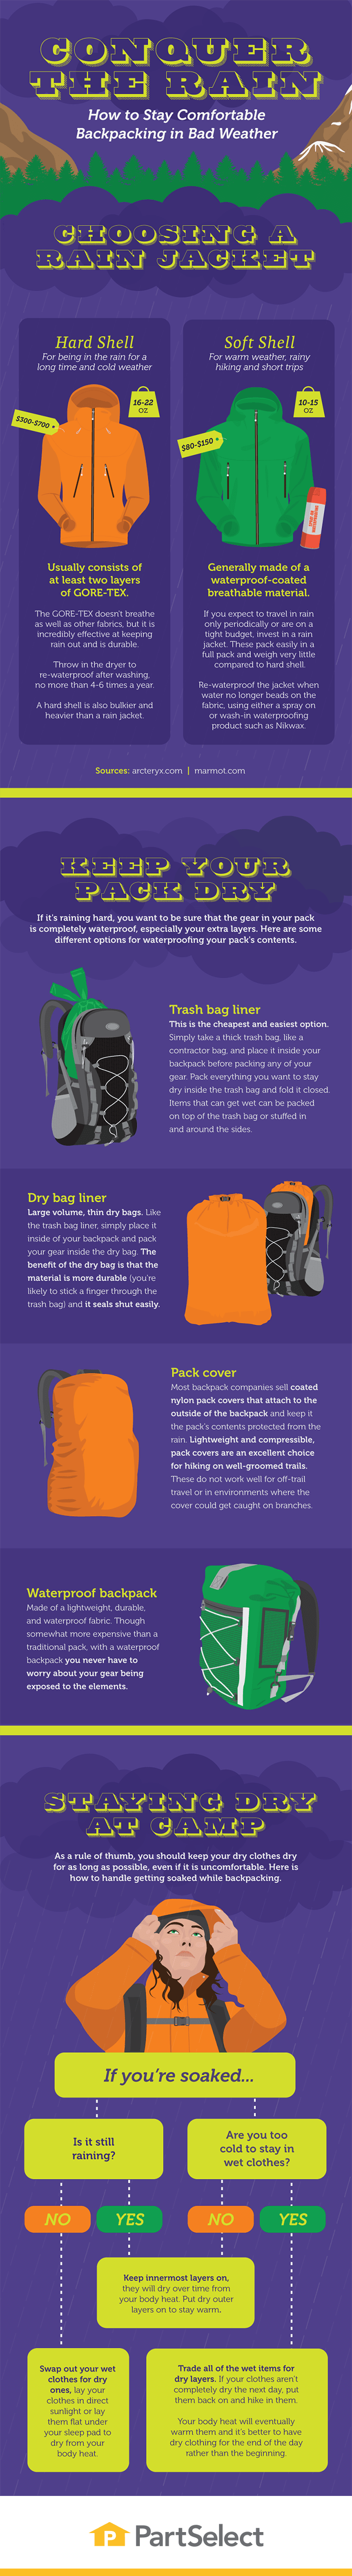 A Bad-Weather Backpacking Survival Guide - Infographic